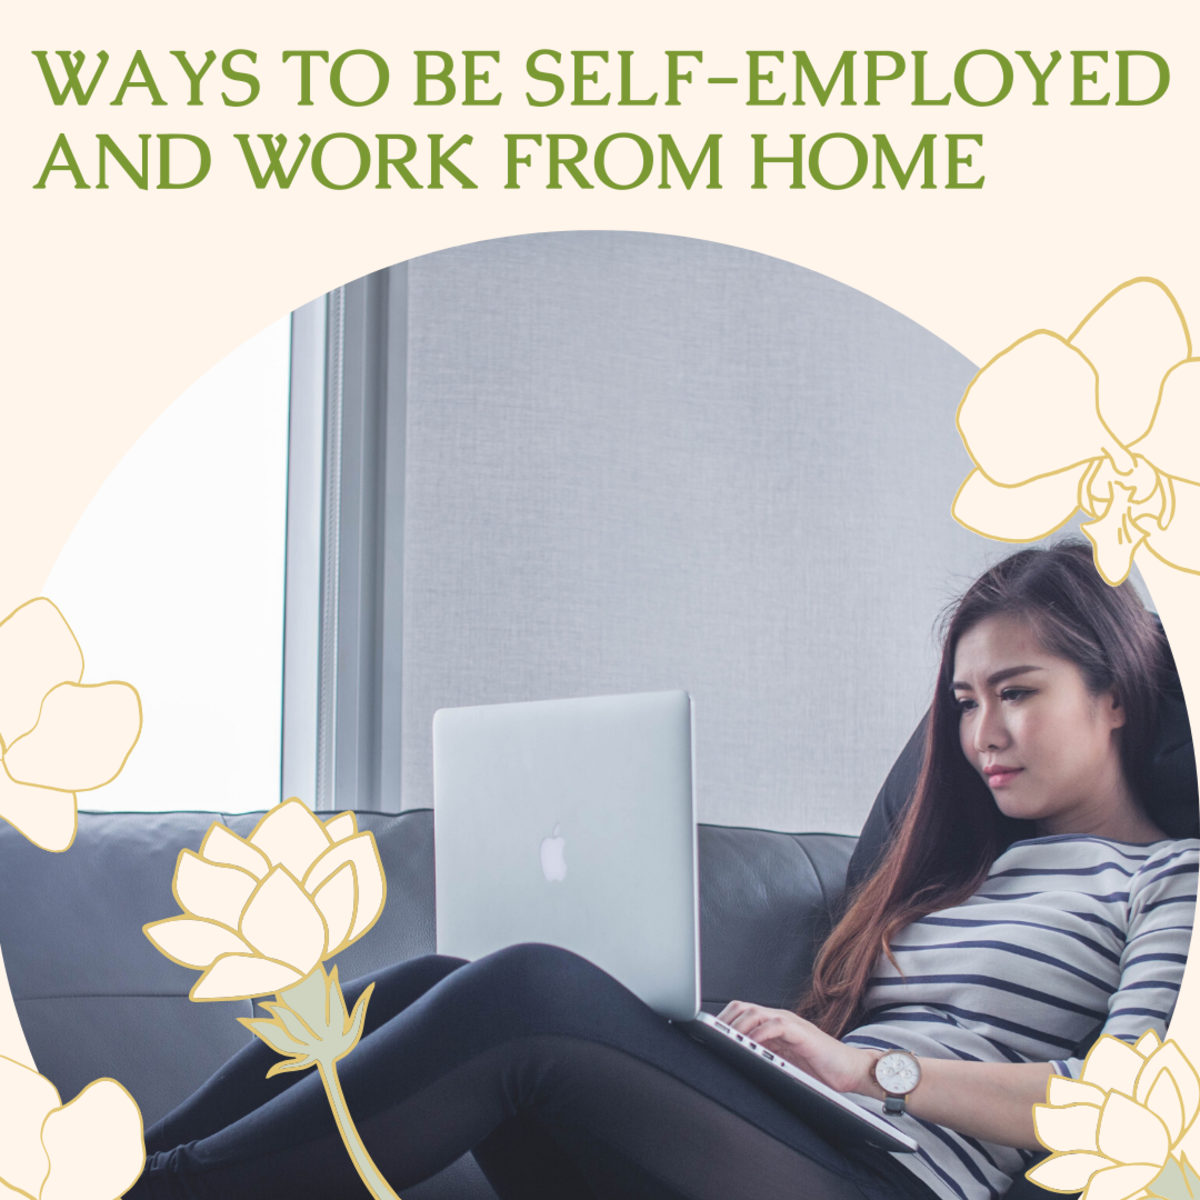 Learn ways to work from home and live your dreams!